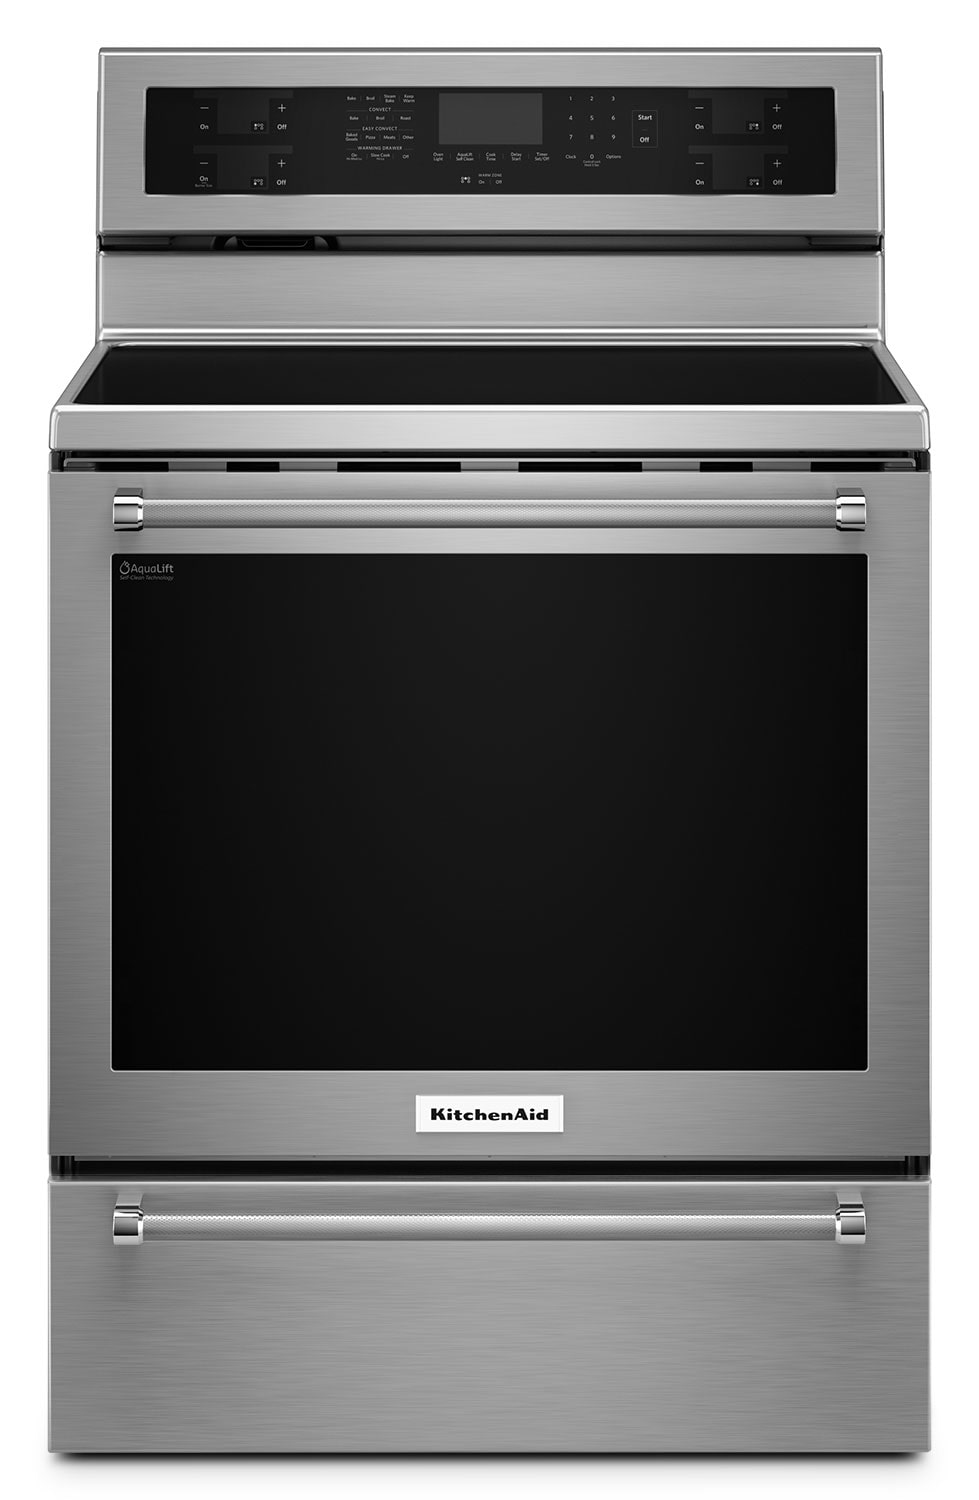 [KitchenAid Stainless Steel Freestanding Electric Convection Range (6.4 Cu. Ft.) - YKFES530ESS]